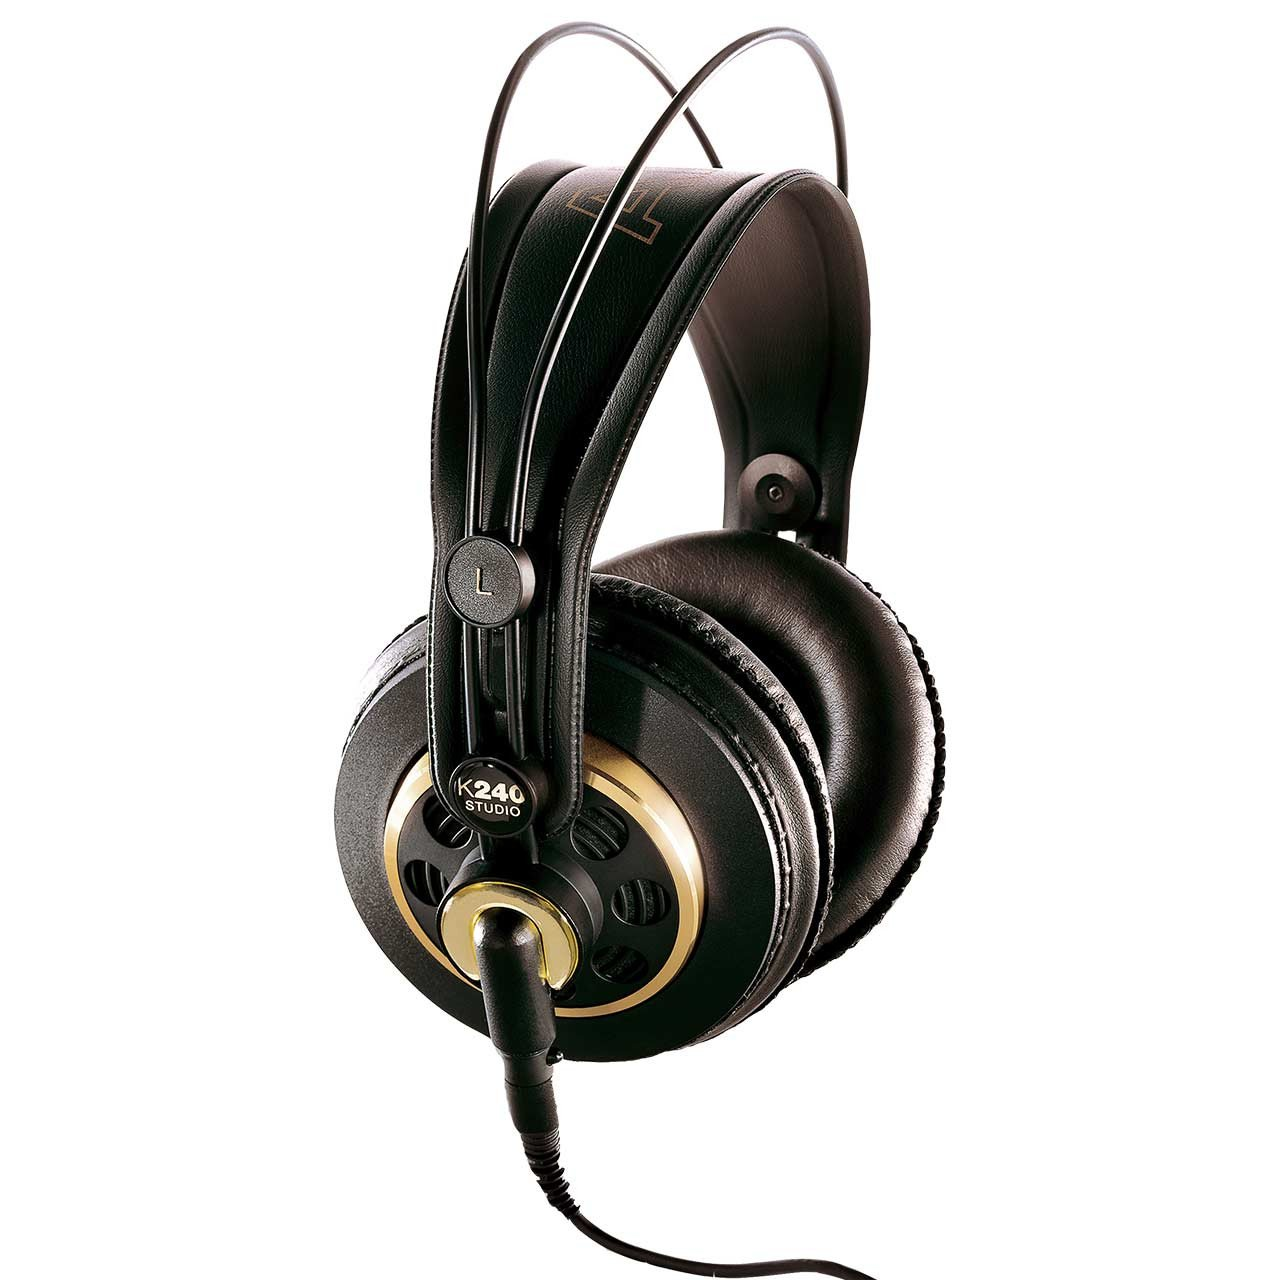 AKG K240 Studio Professional Over-Ear Semi-Open Headphones